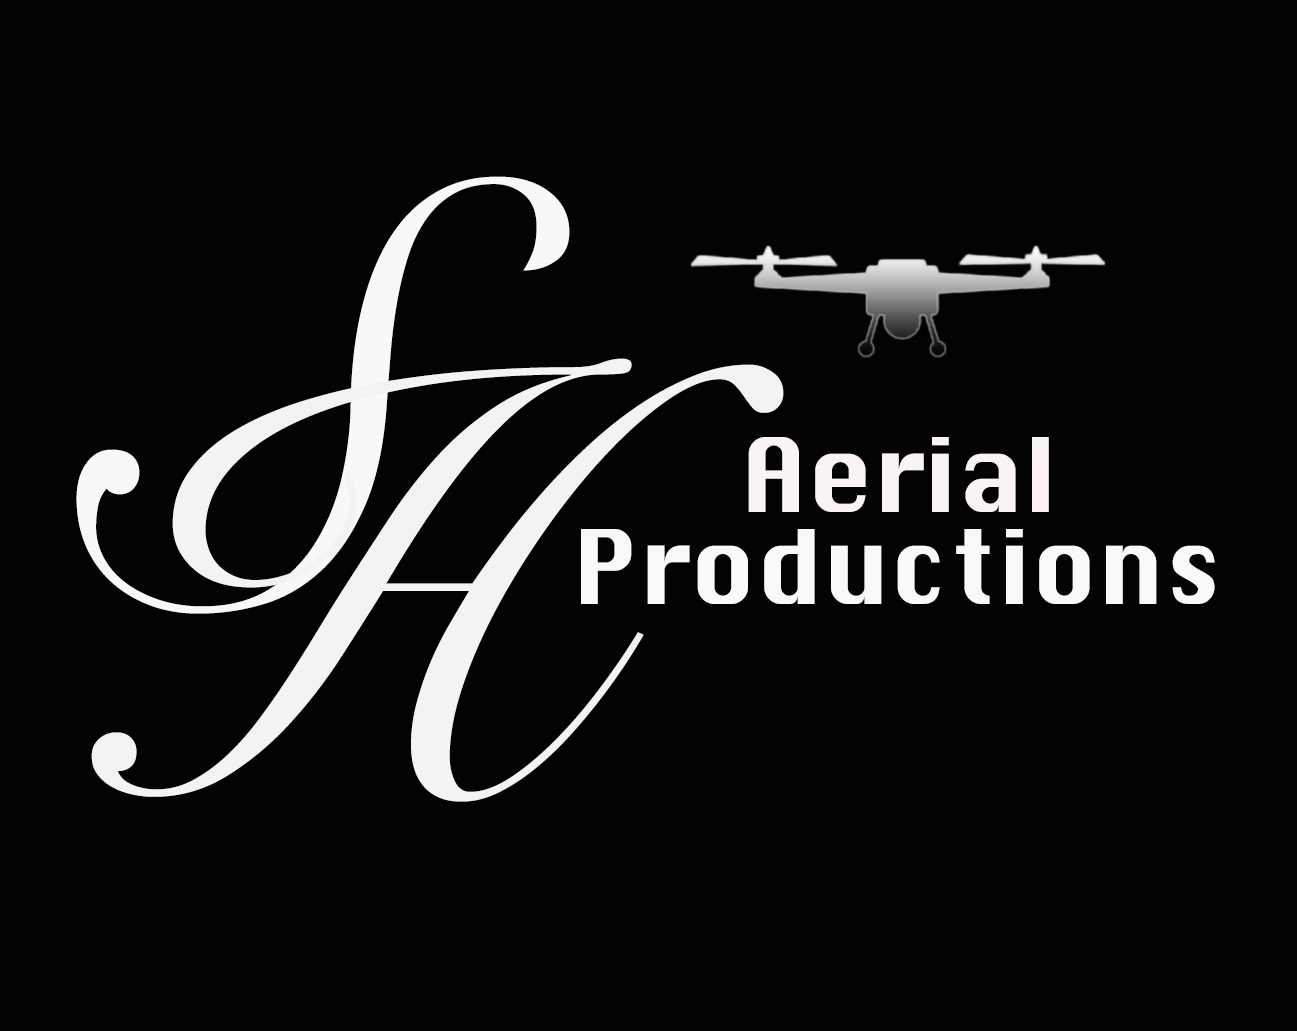 Soaring Heights Aerial Productions image 0